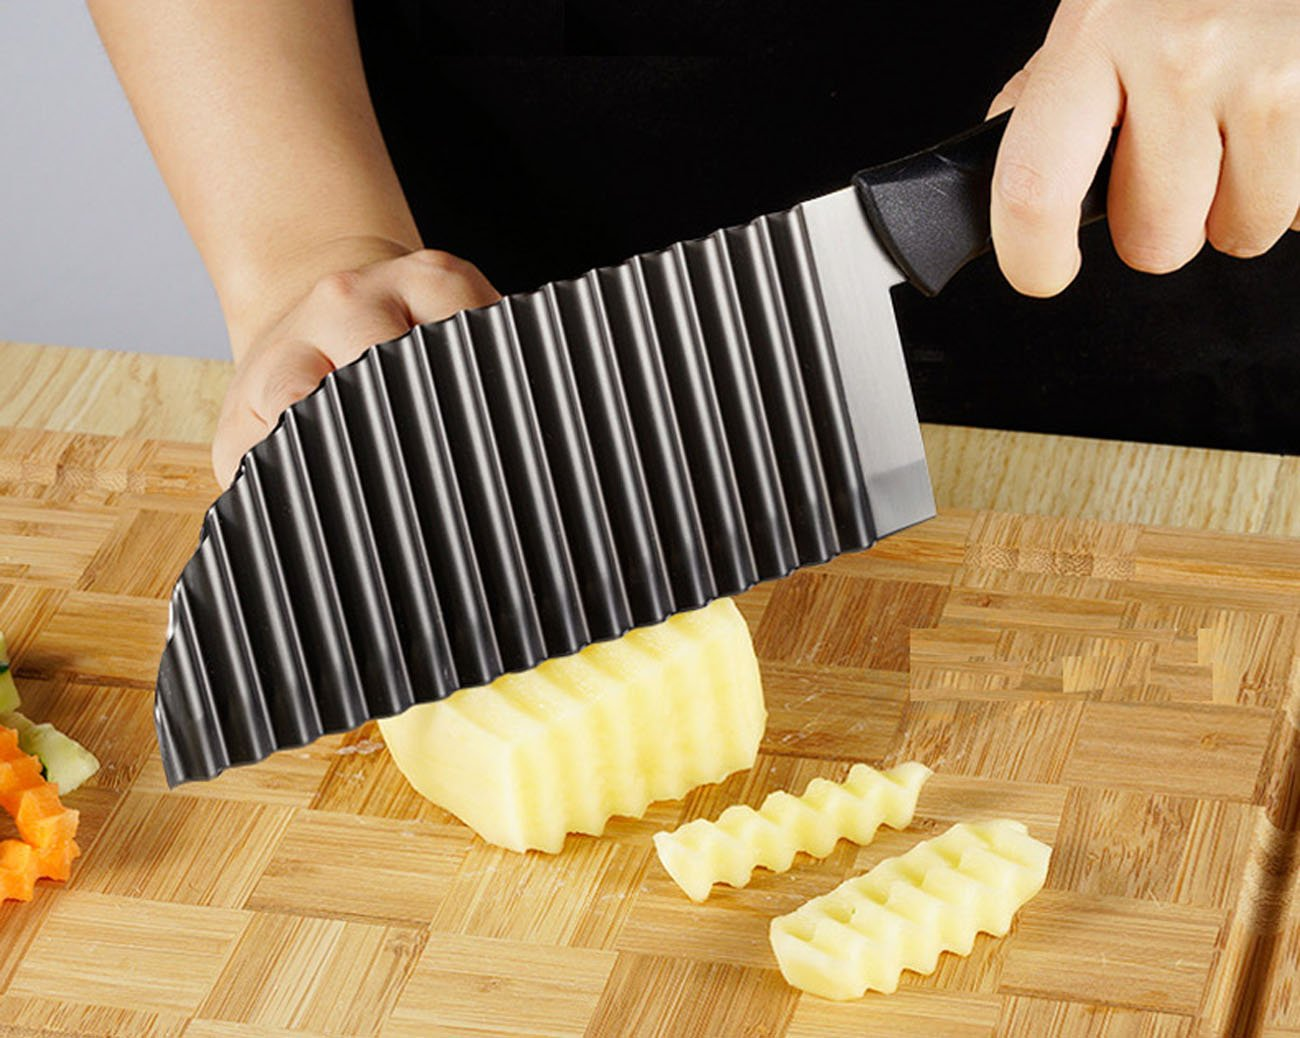 cheap crinkle french fry cutter find crinkle french fry cutter